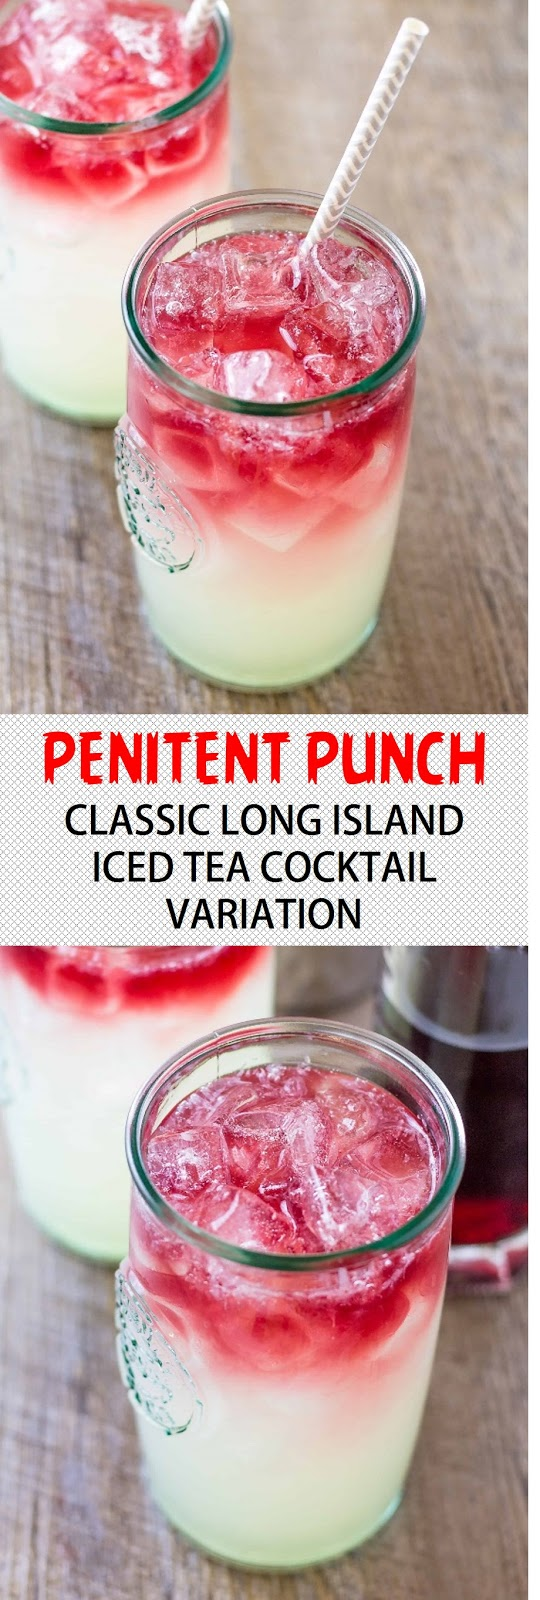 PENITENT PUNCH – CLASSIC LONG ISLAND ICED TEA COCKTAIL VARIATION